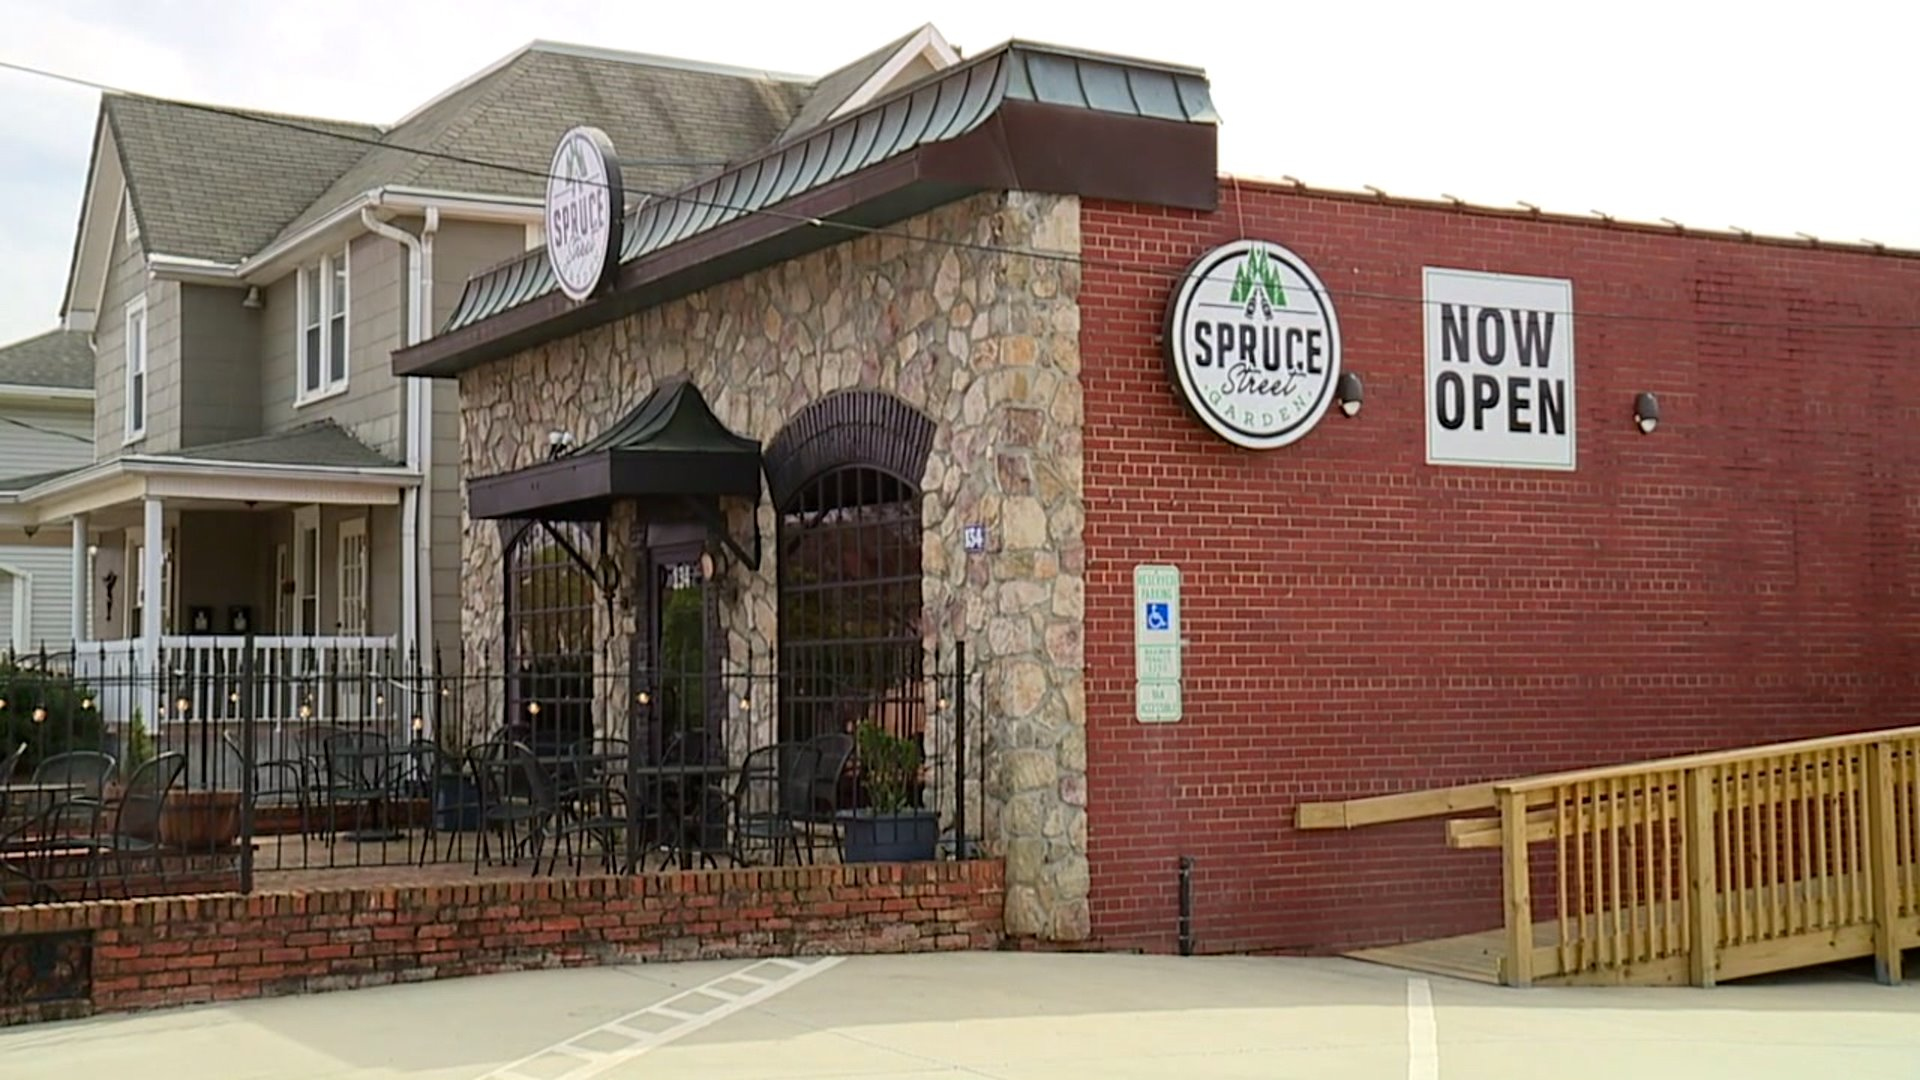 Spruce Street Garden in Winston-Salem forced to shut down as dining room closures take a toll